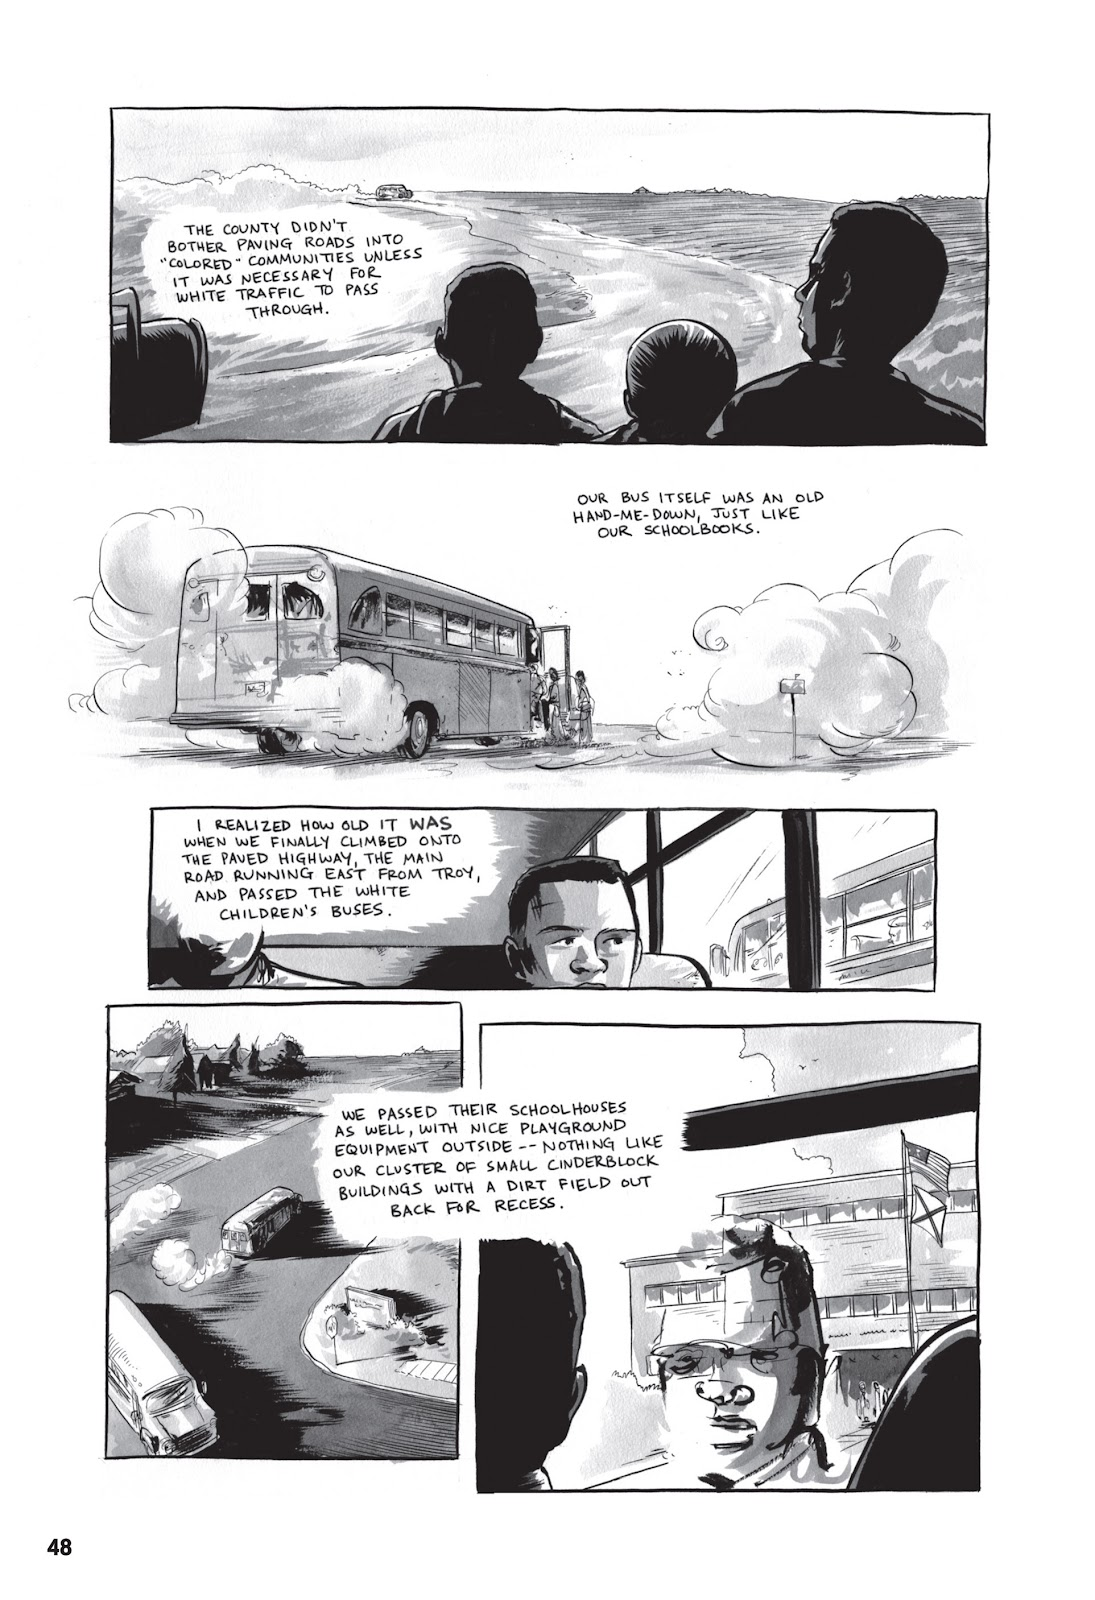 March 1 Page 45